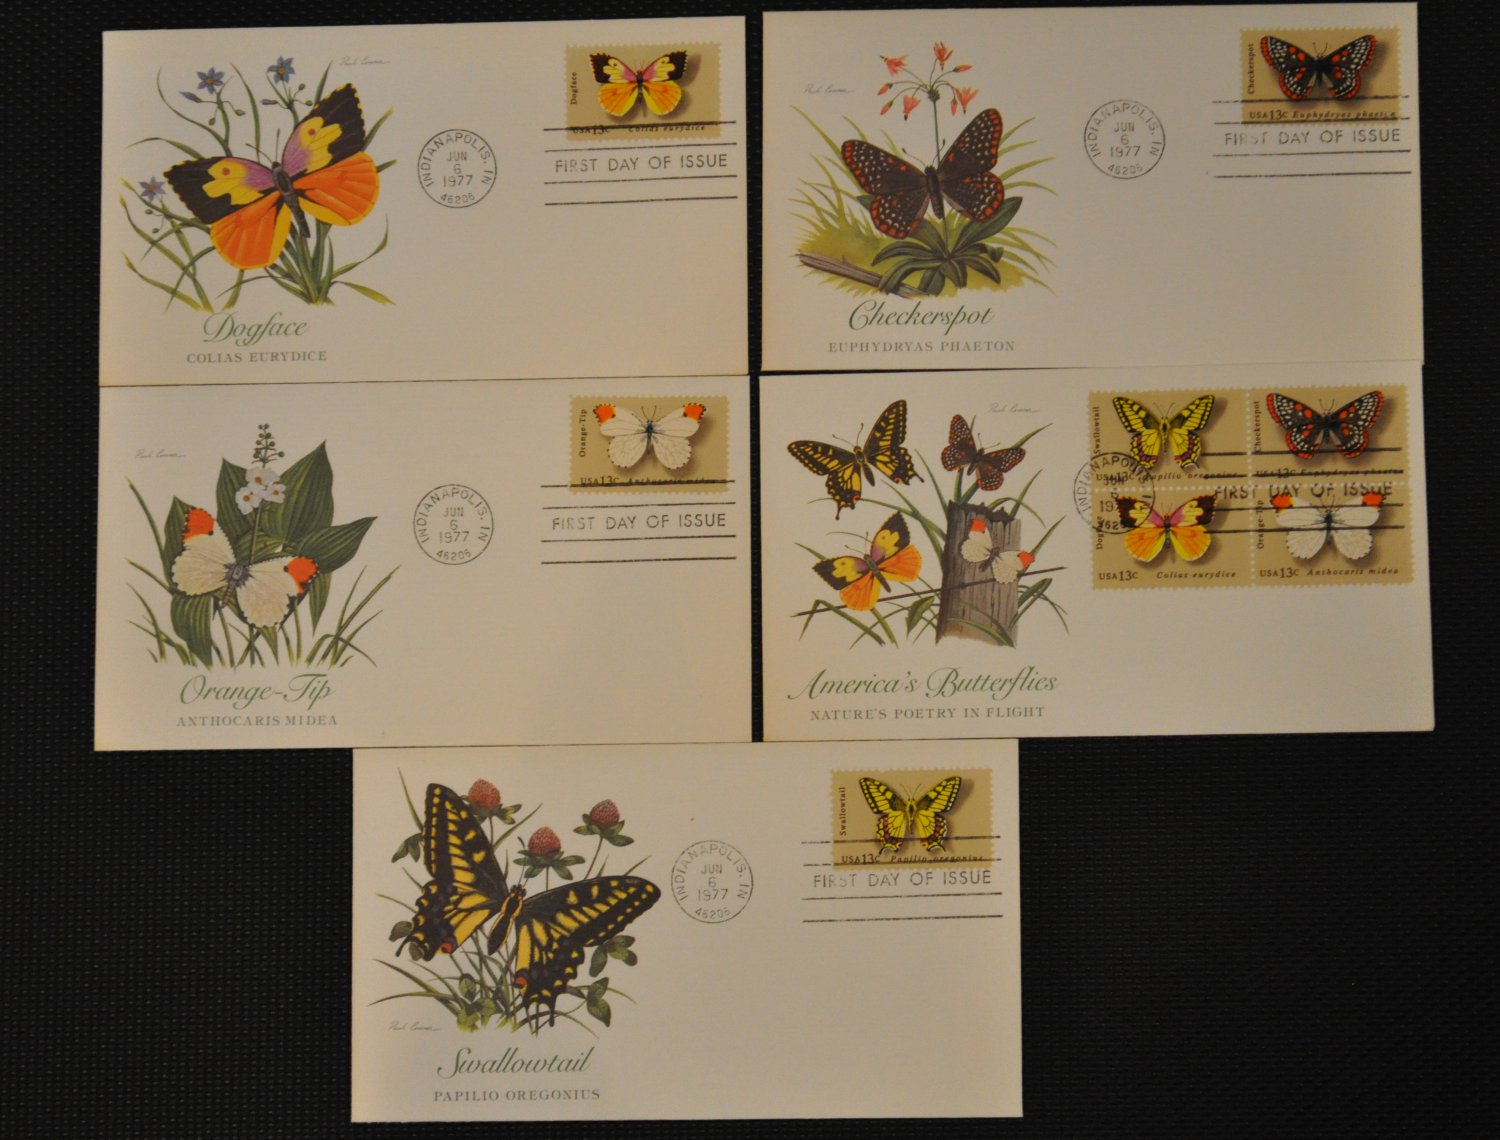 Set of 5 FDC 1977 Butterfly First Day of Issue